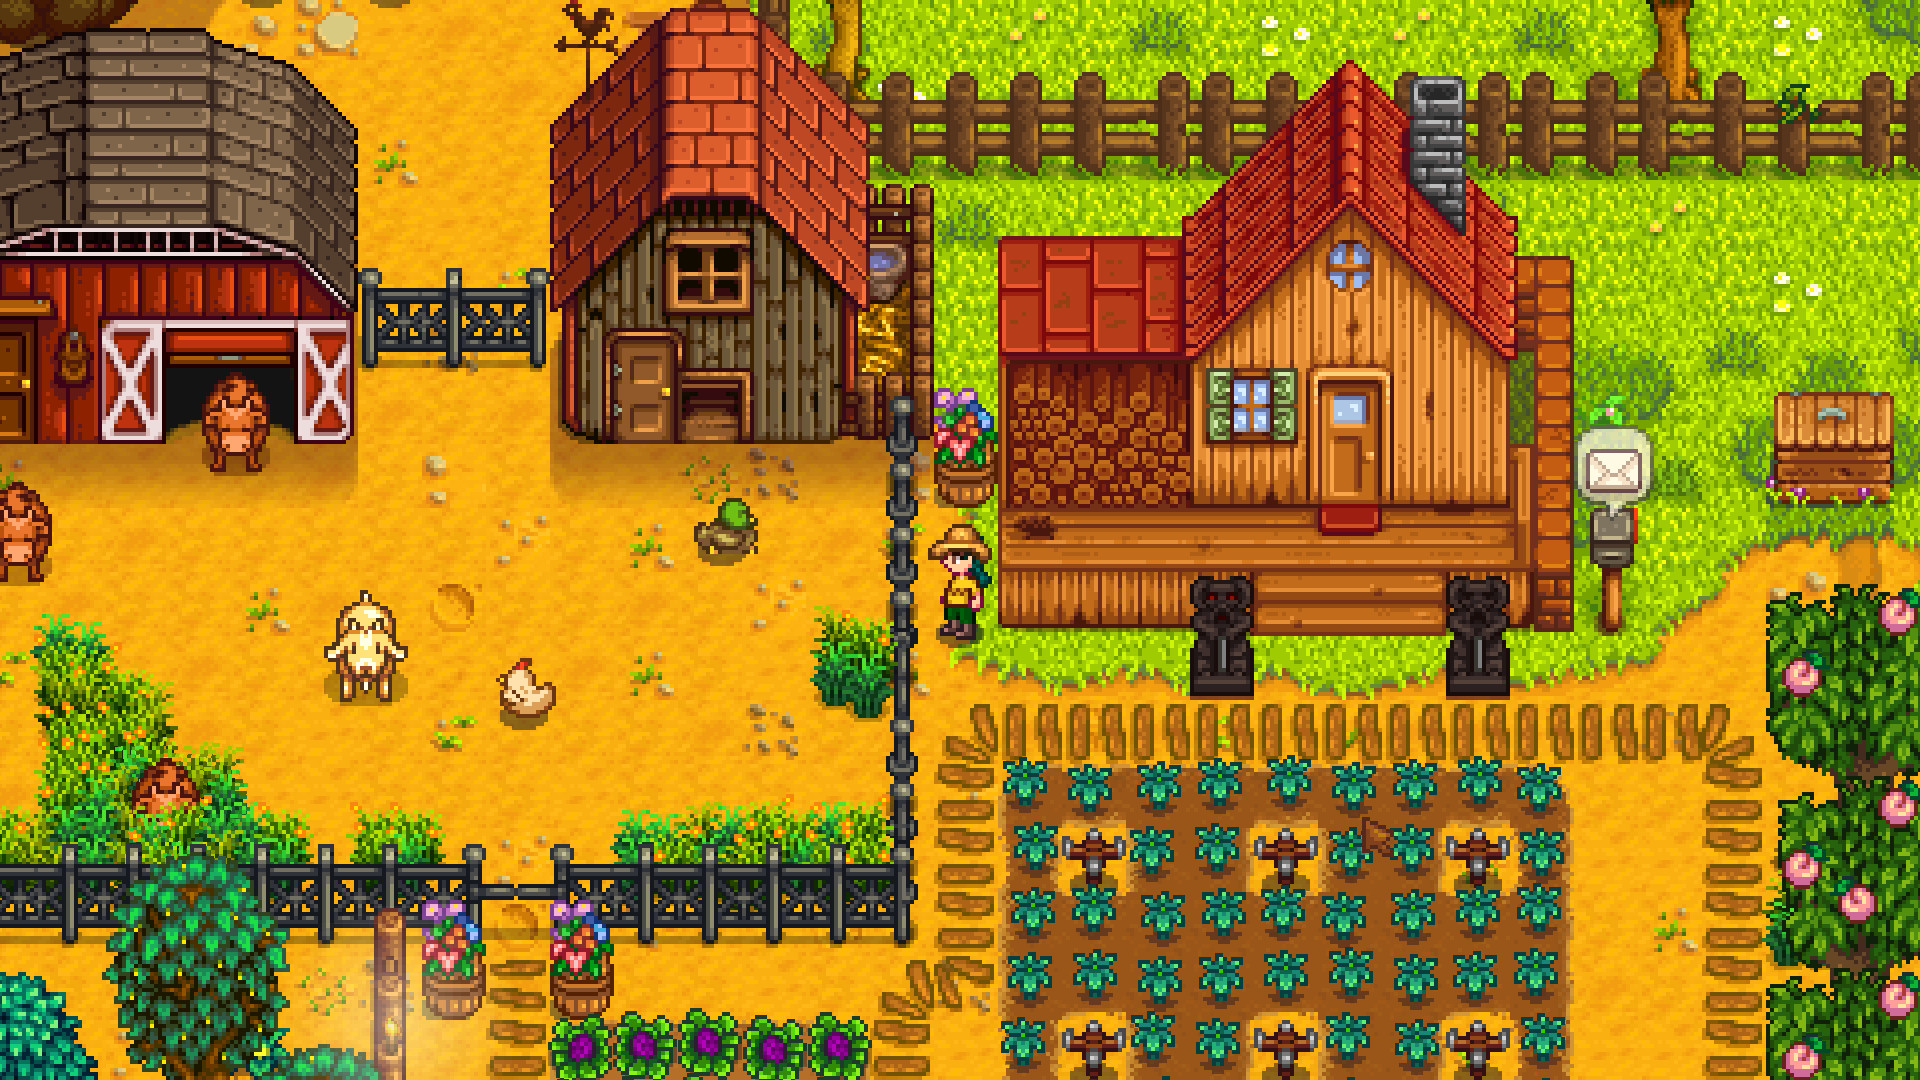 Stardew Valley: How to Play Multiplayer Beta